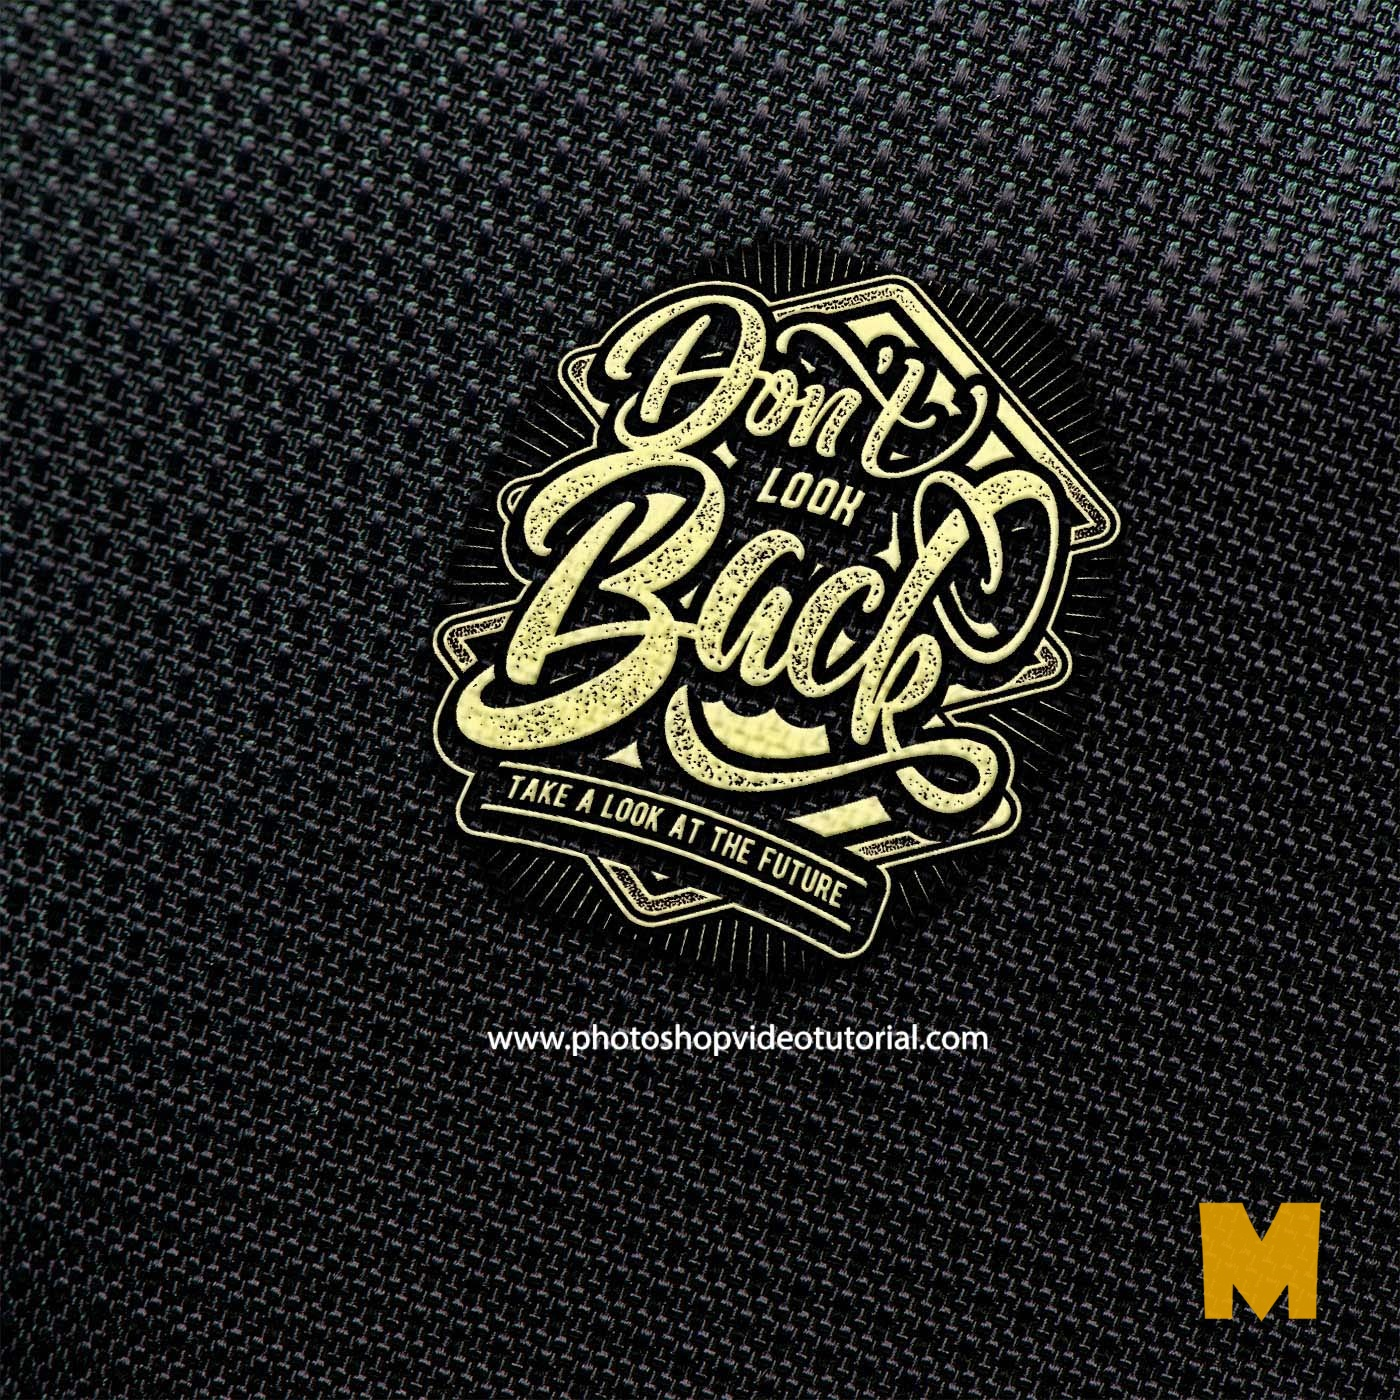 T-shirt Fabric Logo Mockups